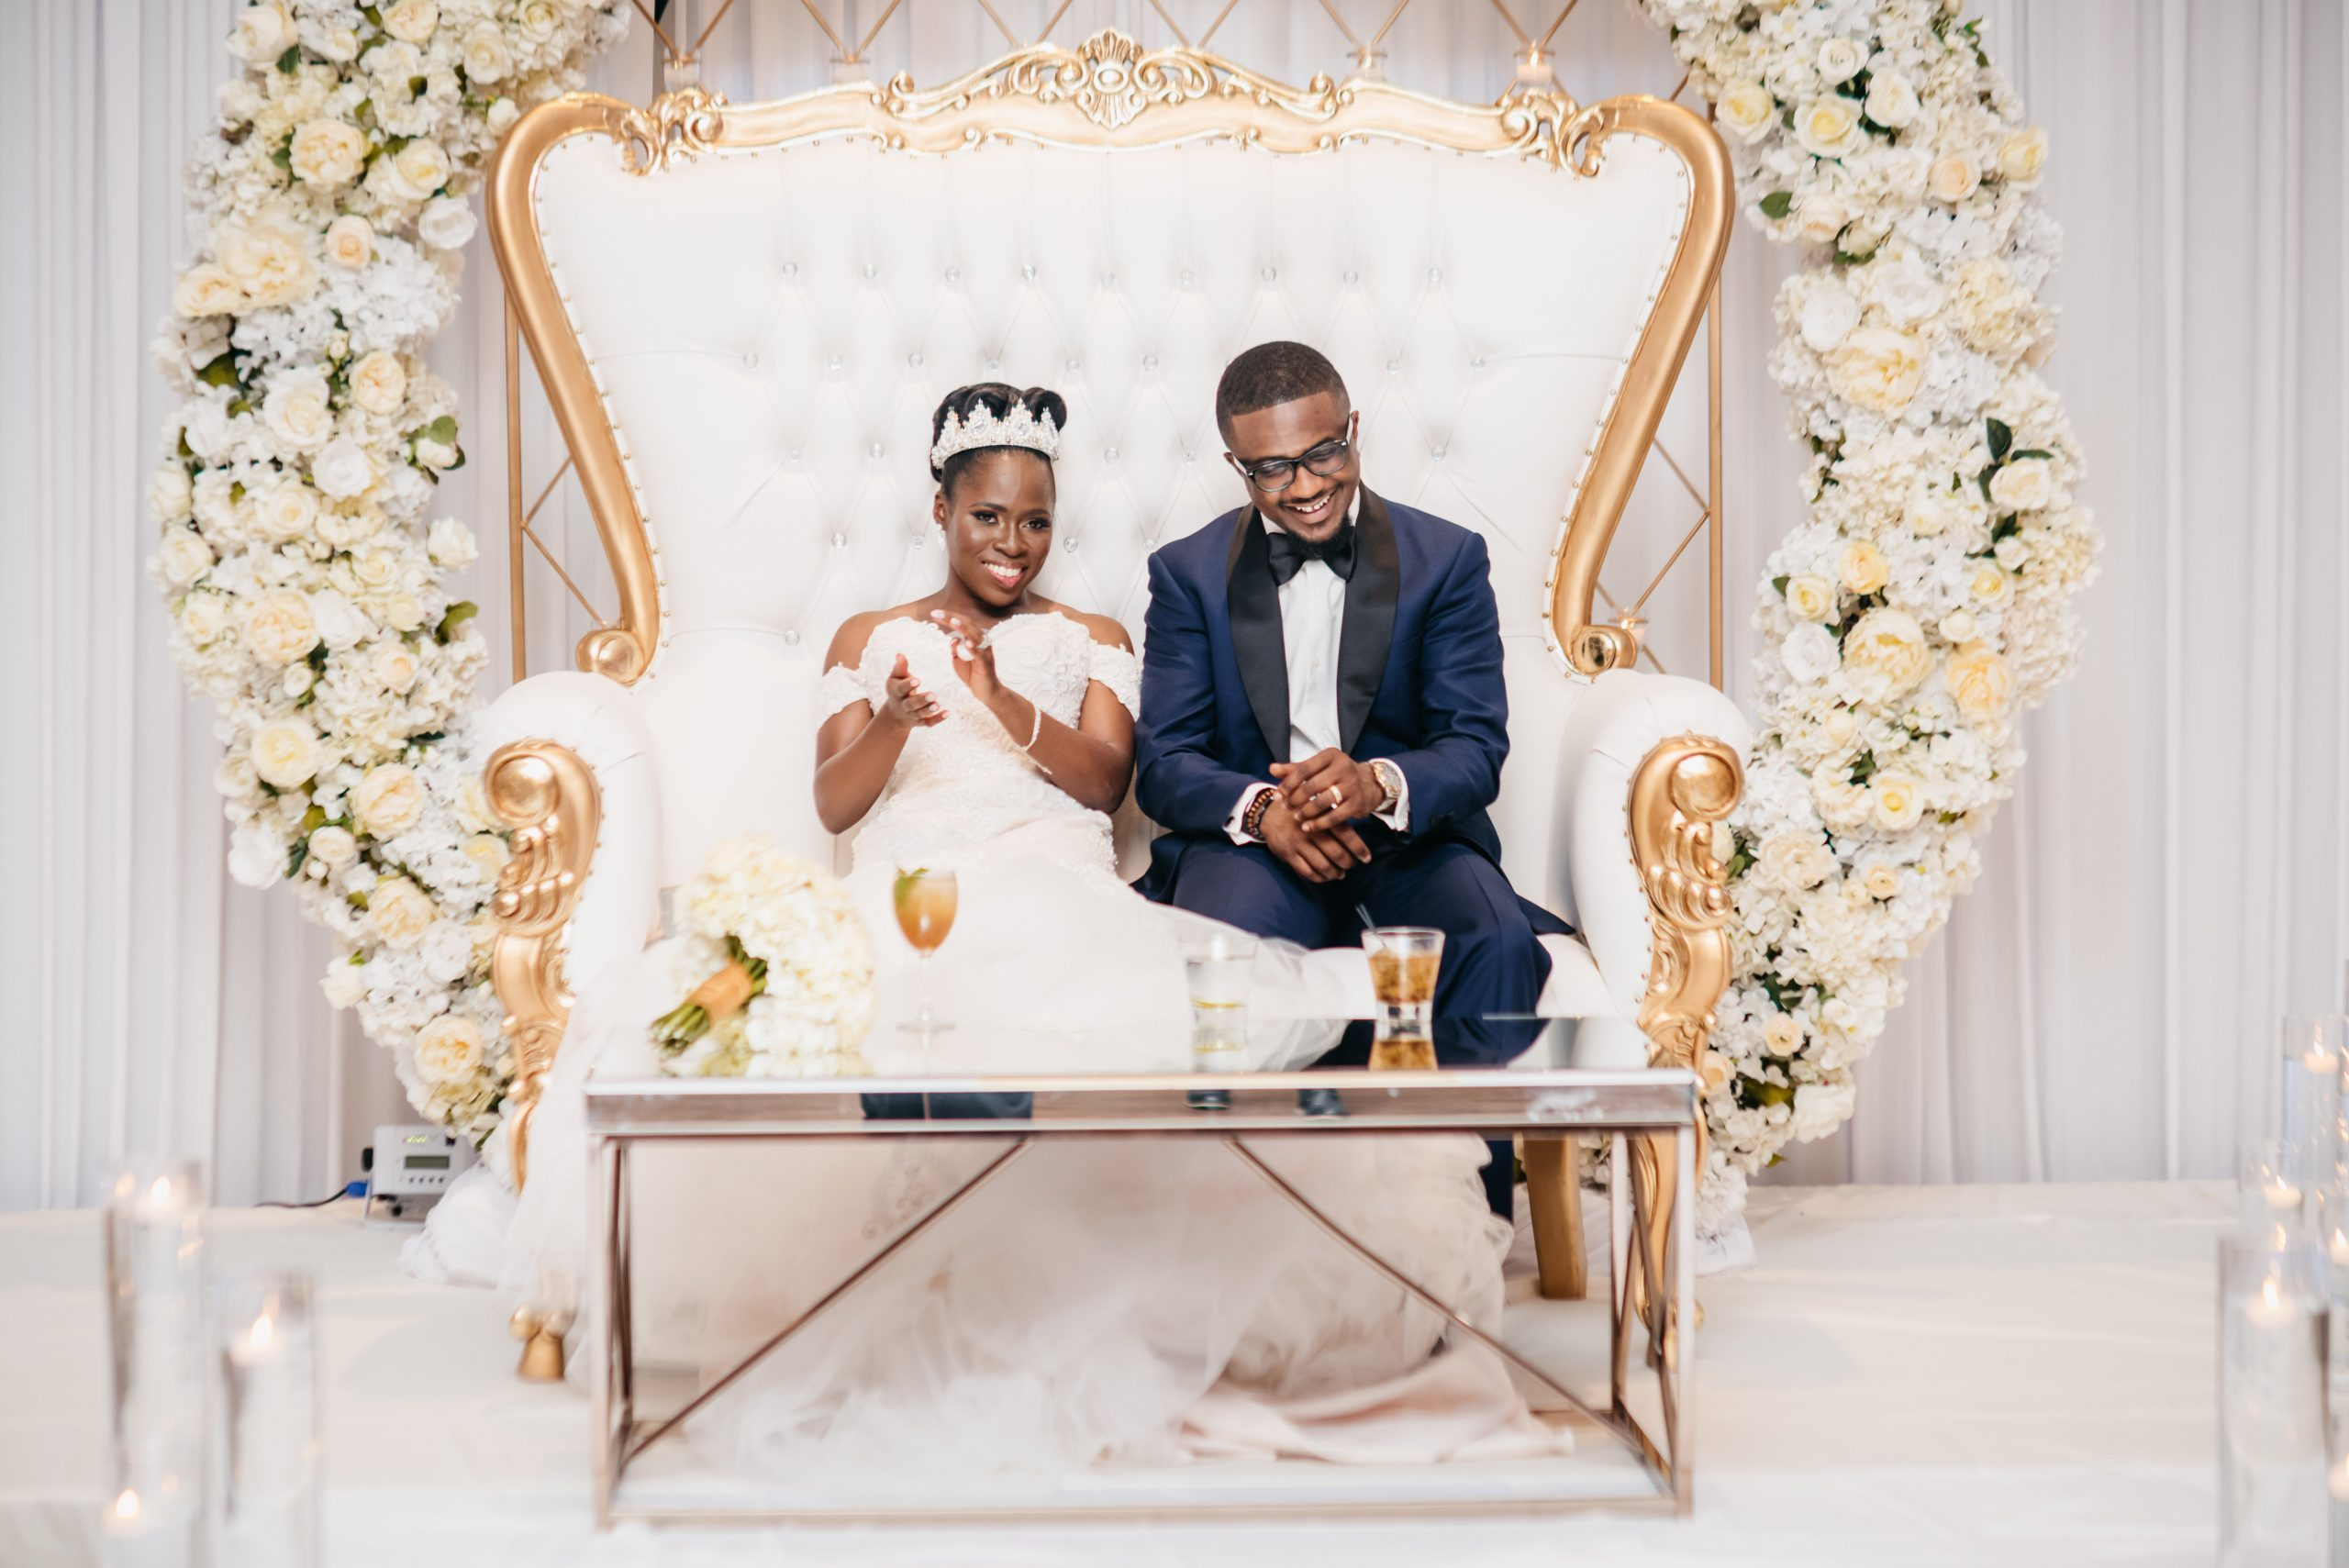 Dallas Nigerian Wedding - Dallas Palms